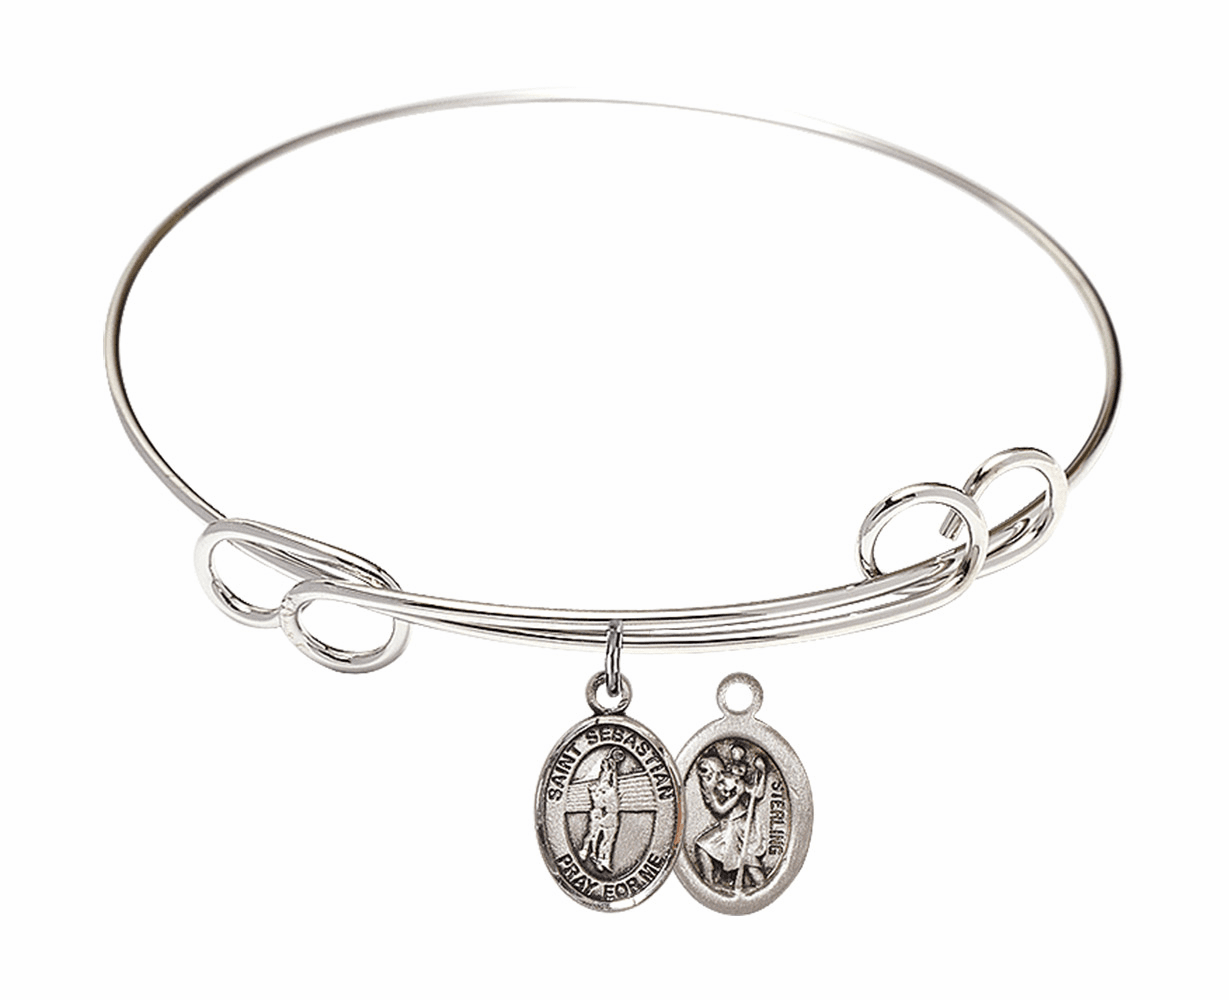 Round Loop St Sebastian Volleyball Bangle Charm Bracelet by Bliss